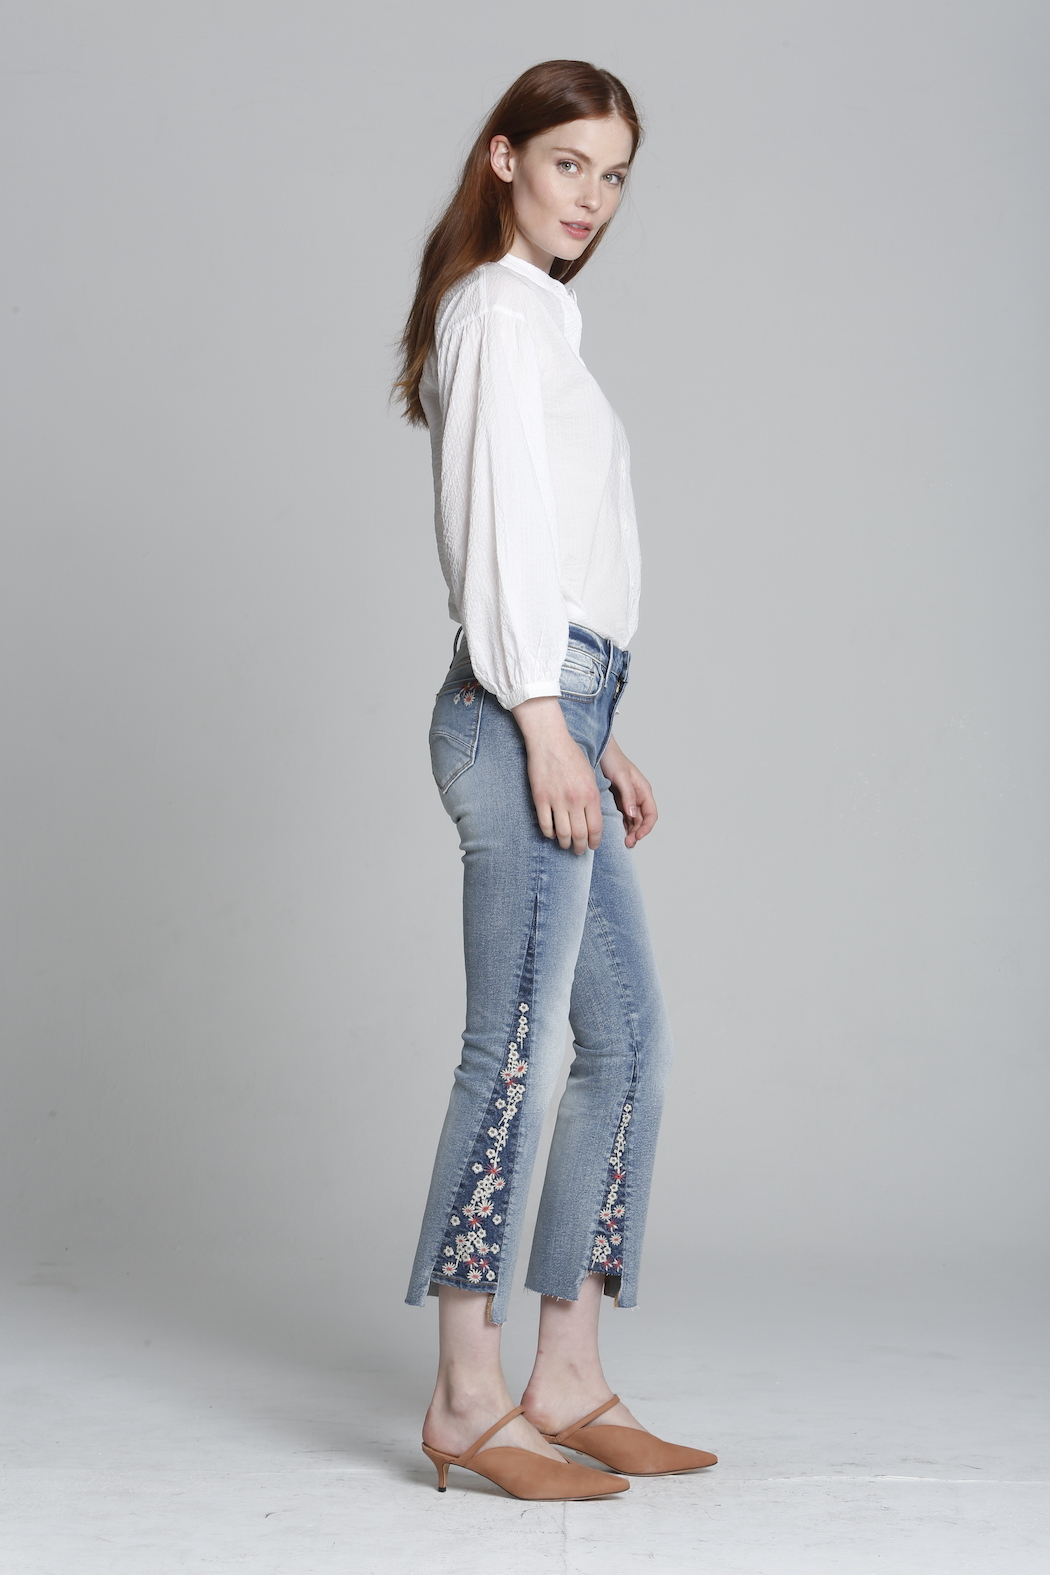 Driftwood Indie X Berry Jam Embroidered Jeans - Side Cropped Image